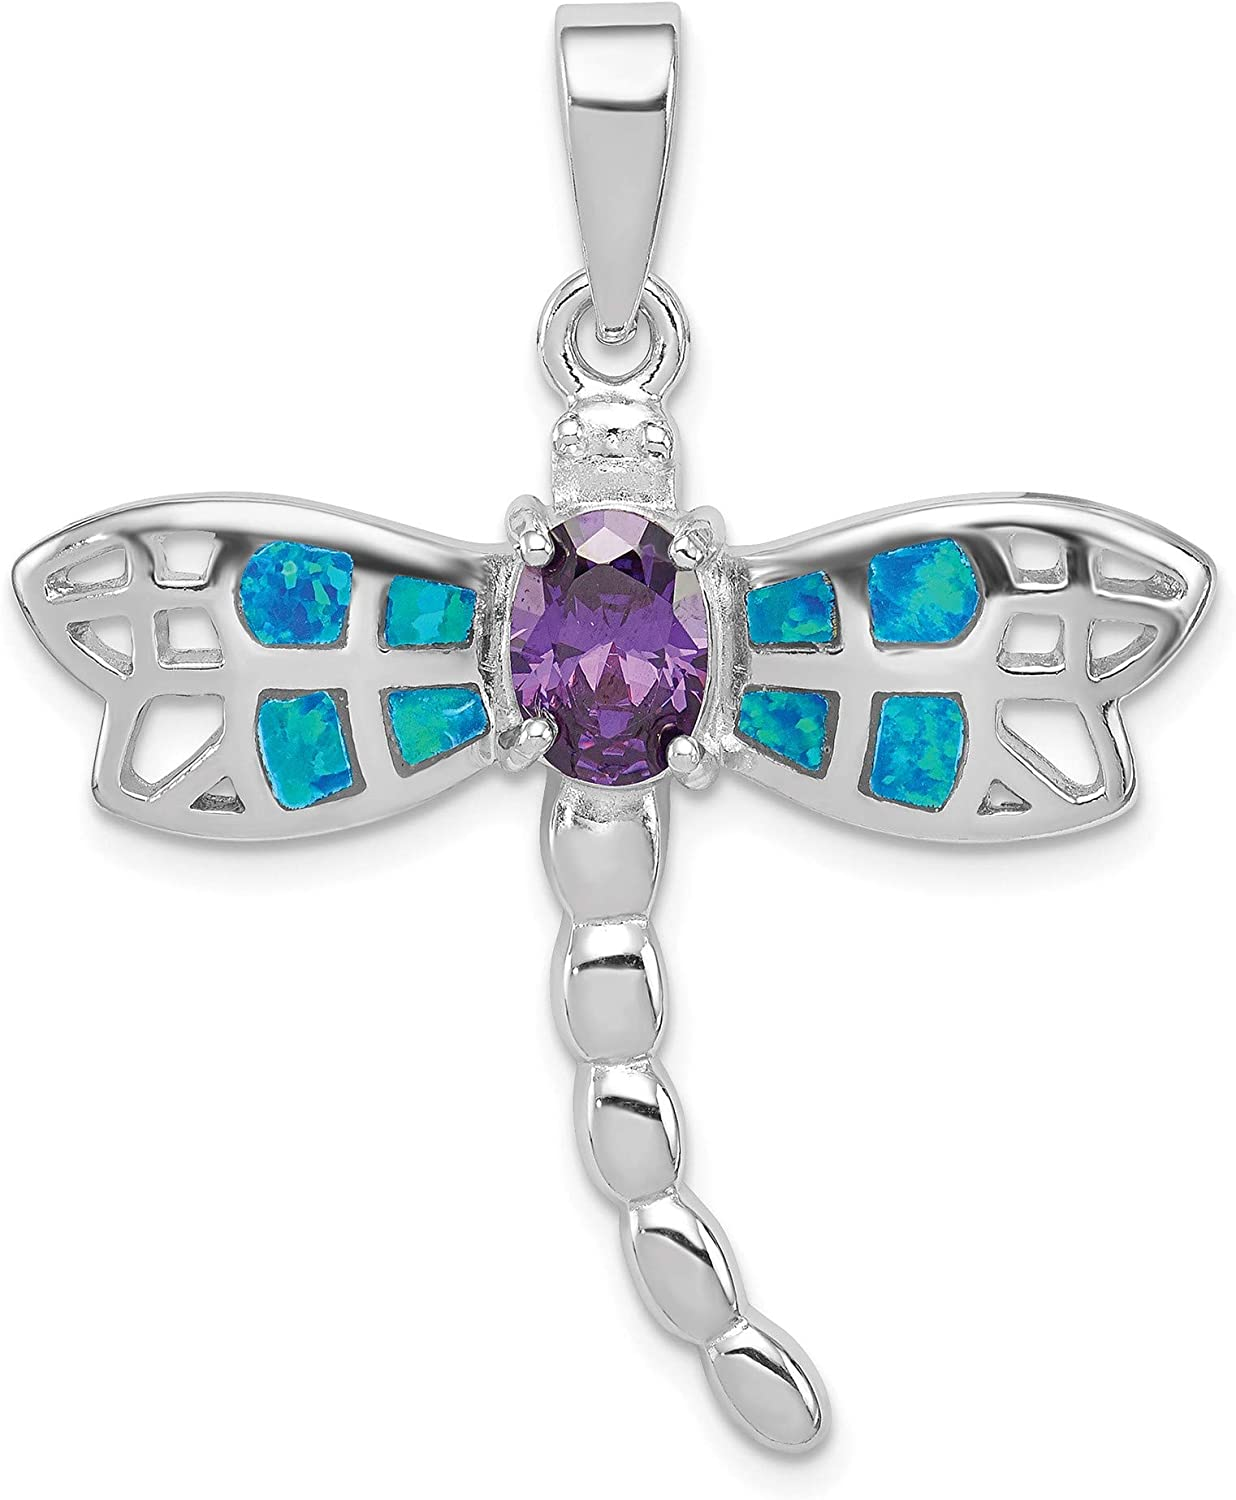 Bonyak Jewelry Sterling Silver Rhodium Plated Cr. Opal Inlay Dragonfly Amethyst Pendant